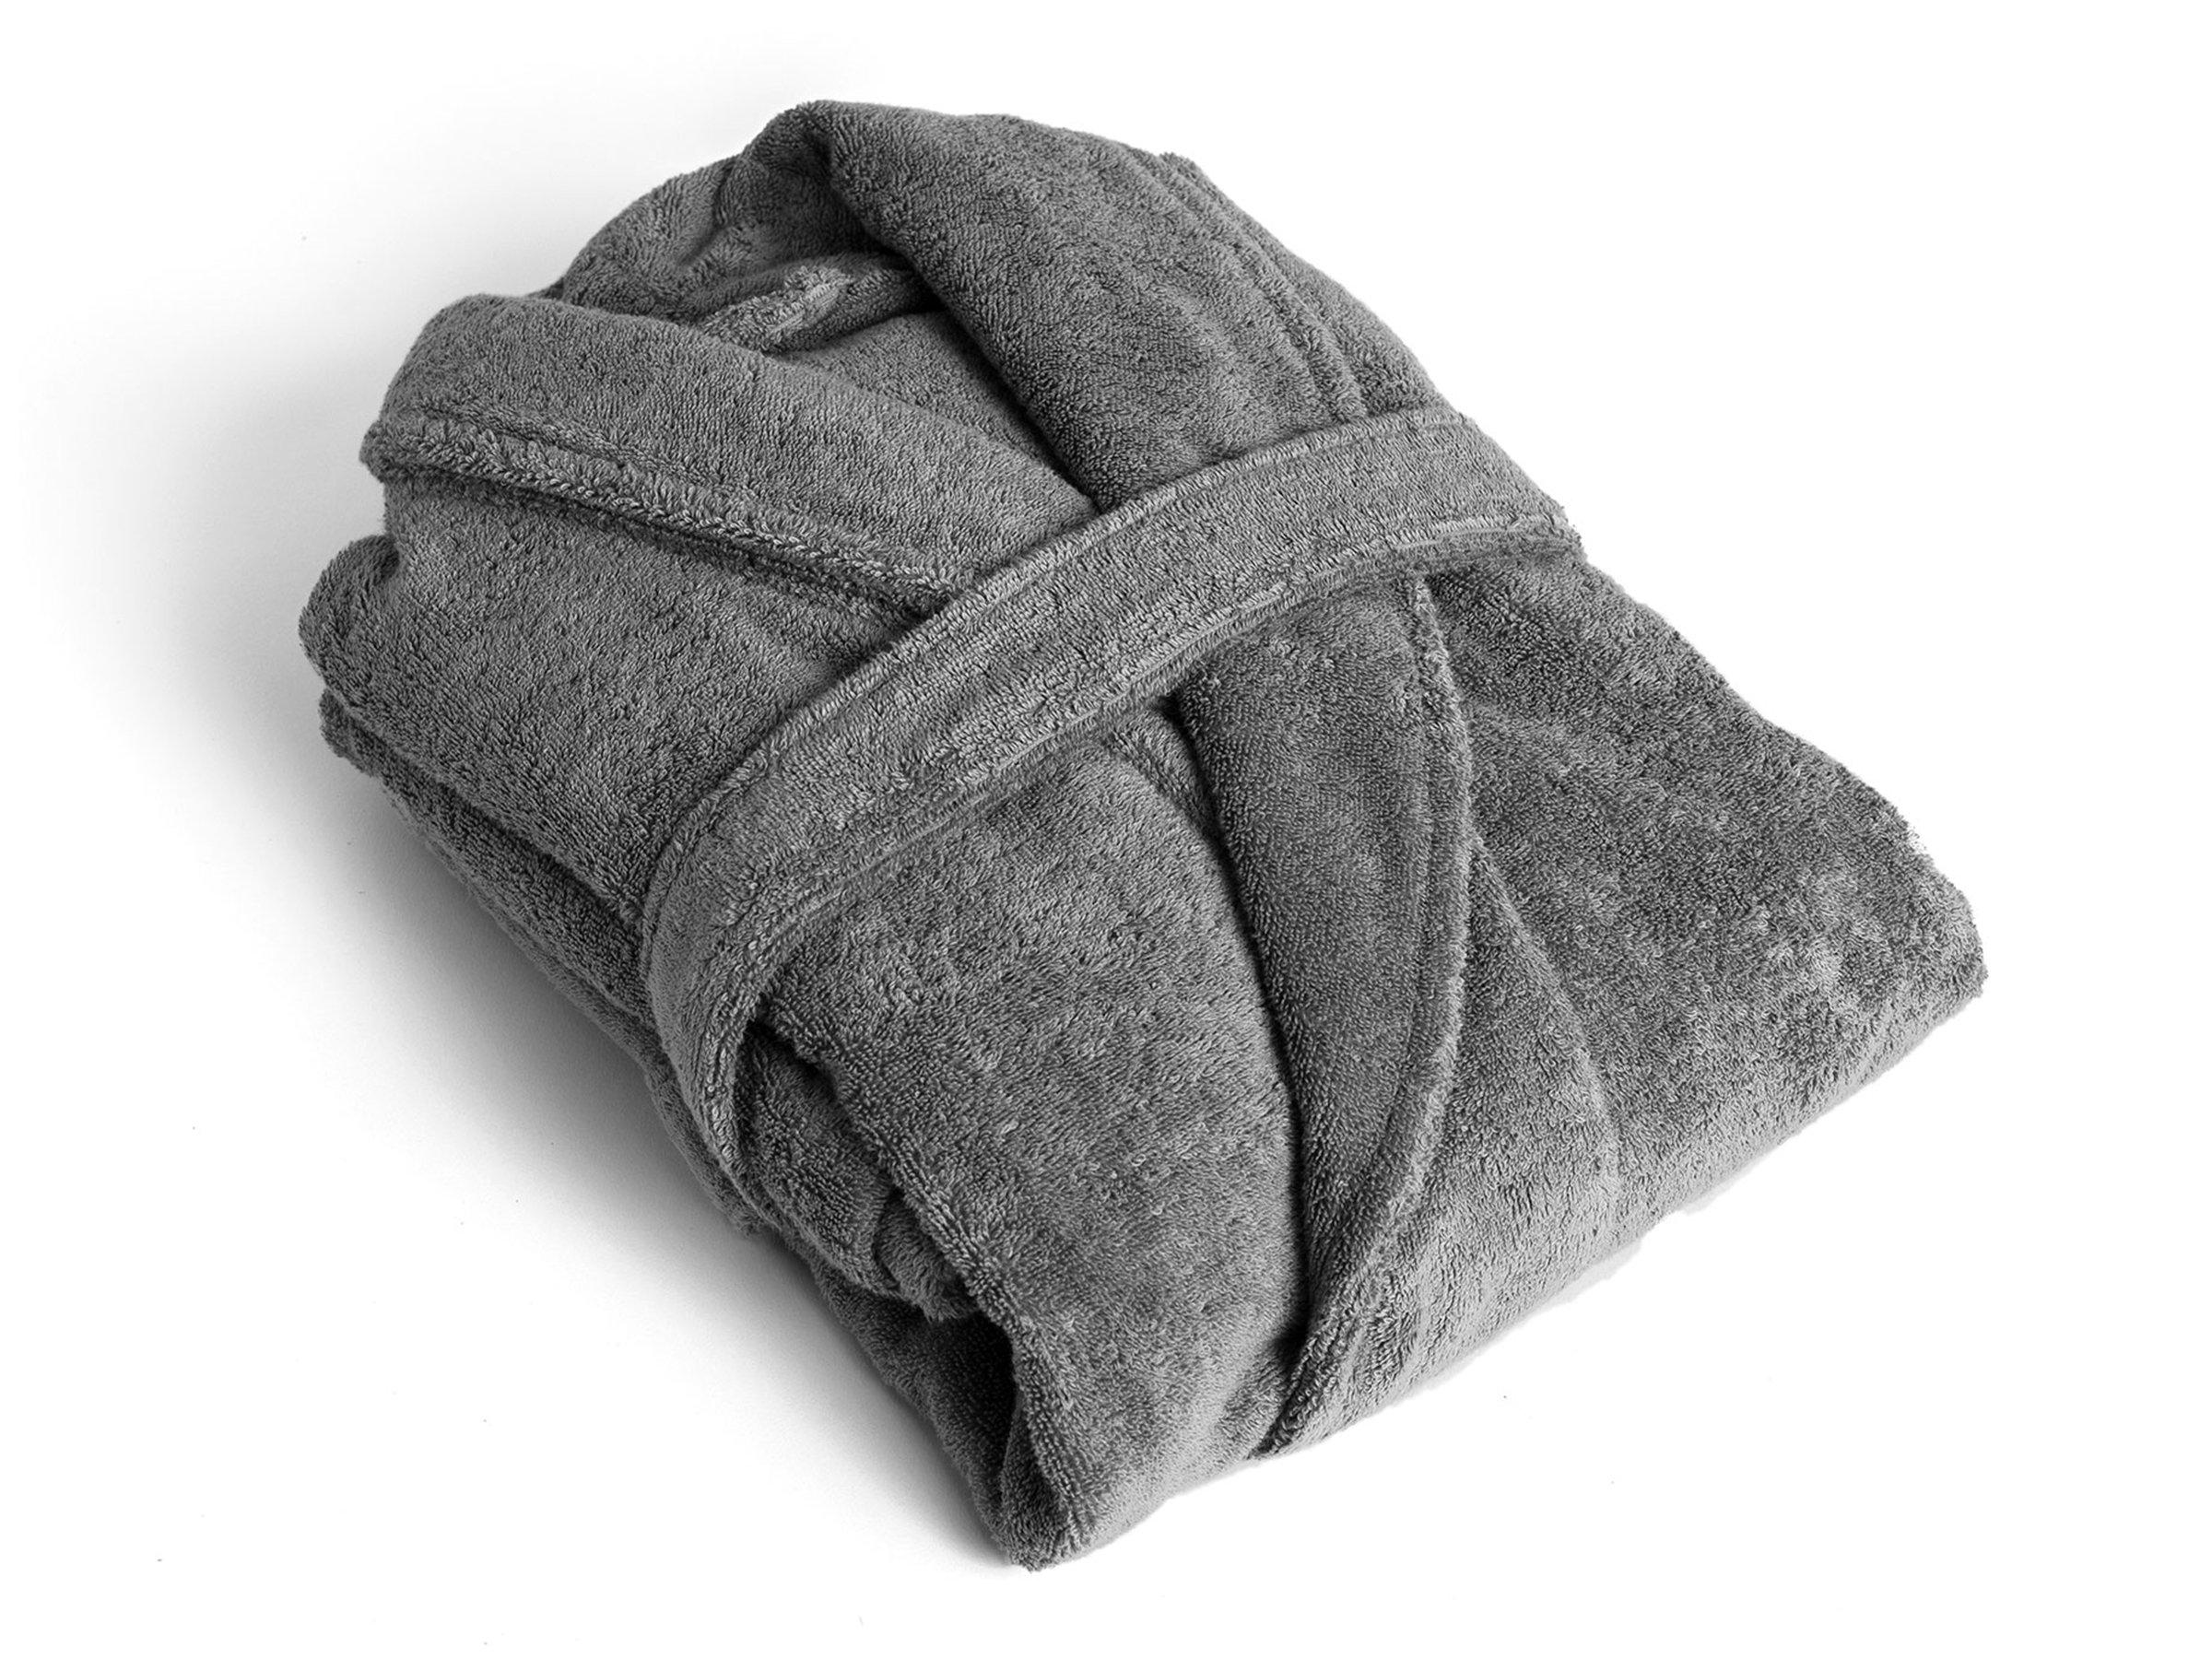 BATHROBE LUXURIOUS TOWELING FOR MEN AND WOMEN- FREE SIZE